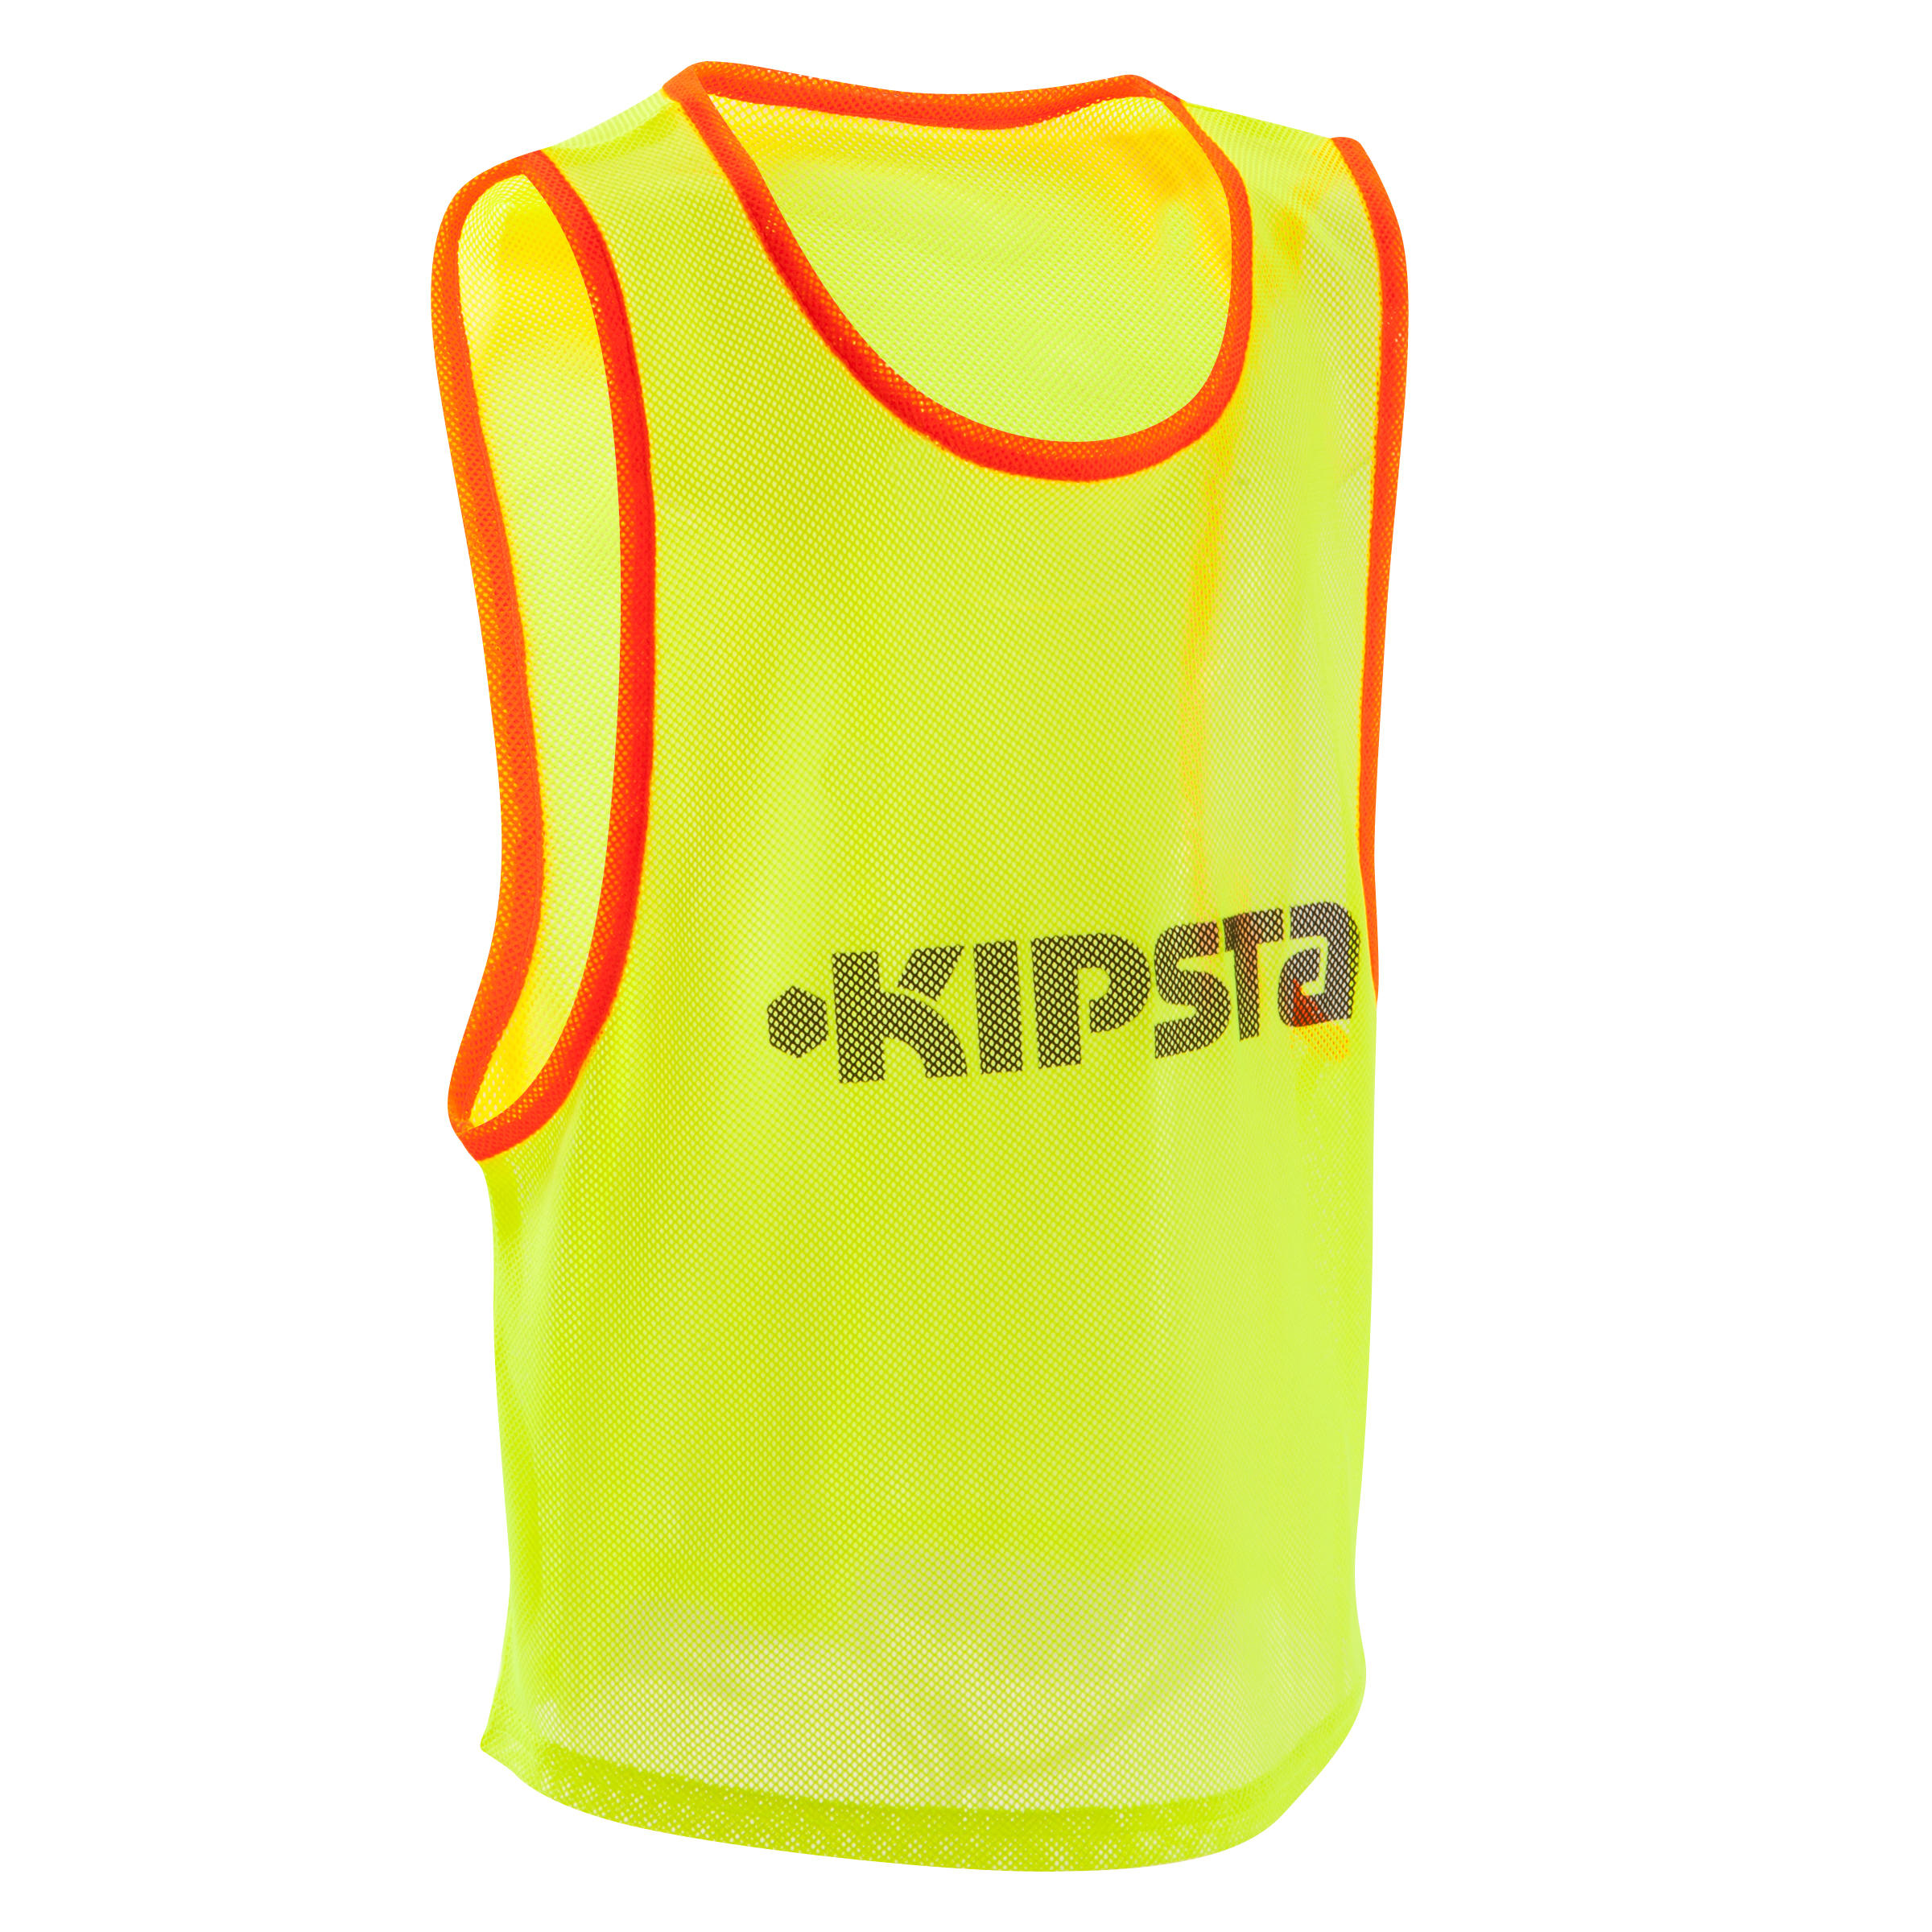 Kids' Team Sports Bib -